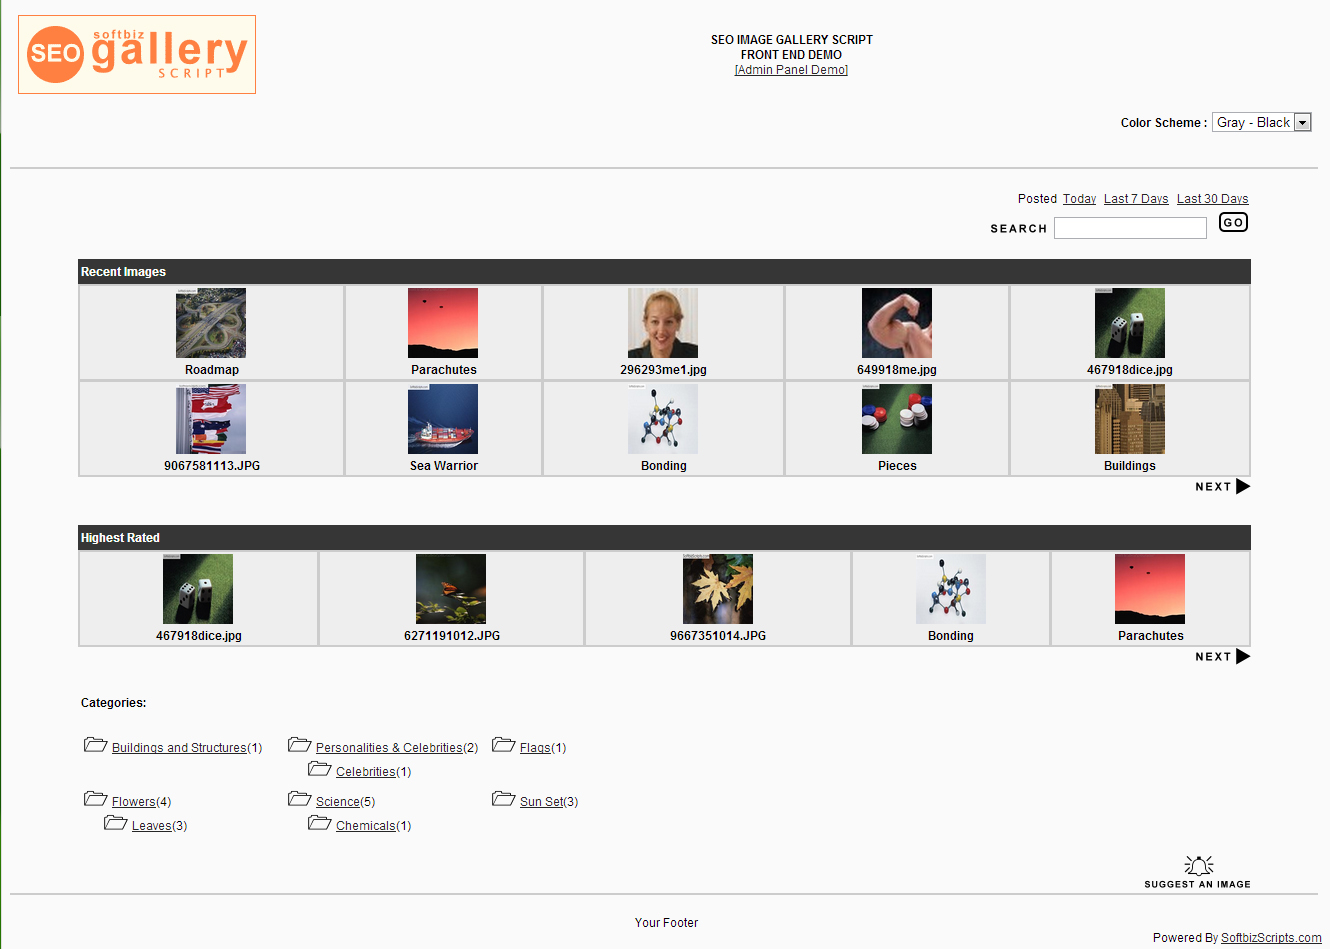 SEO Gallery Script Screenshot